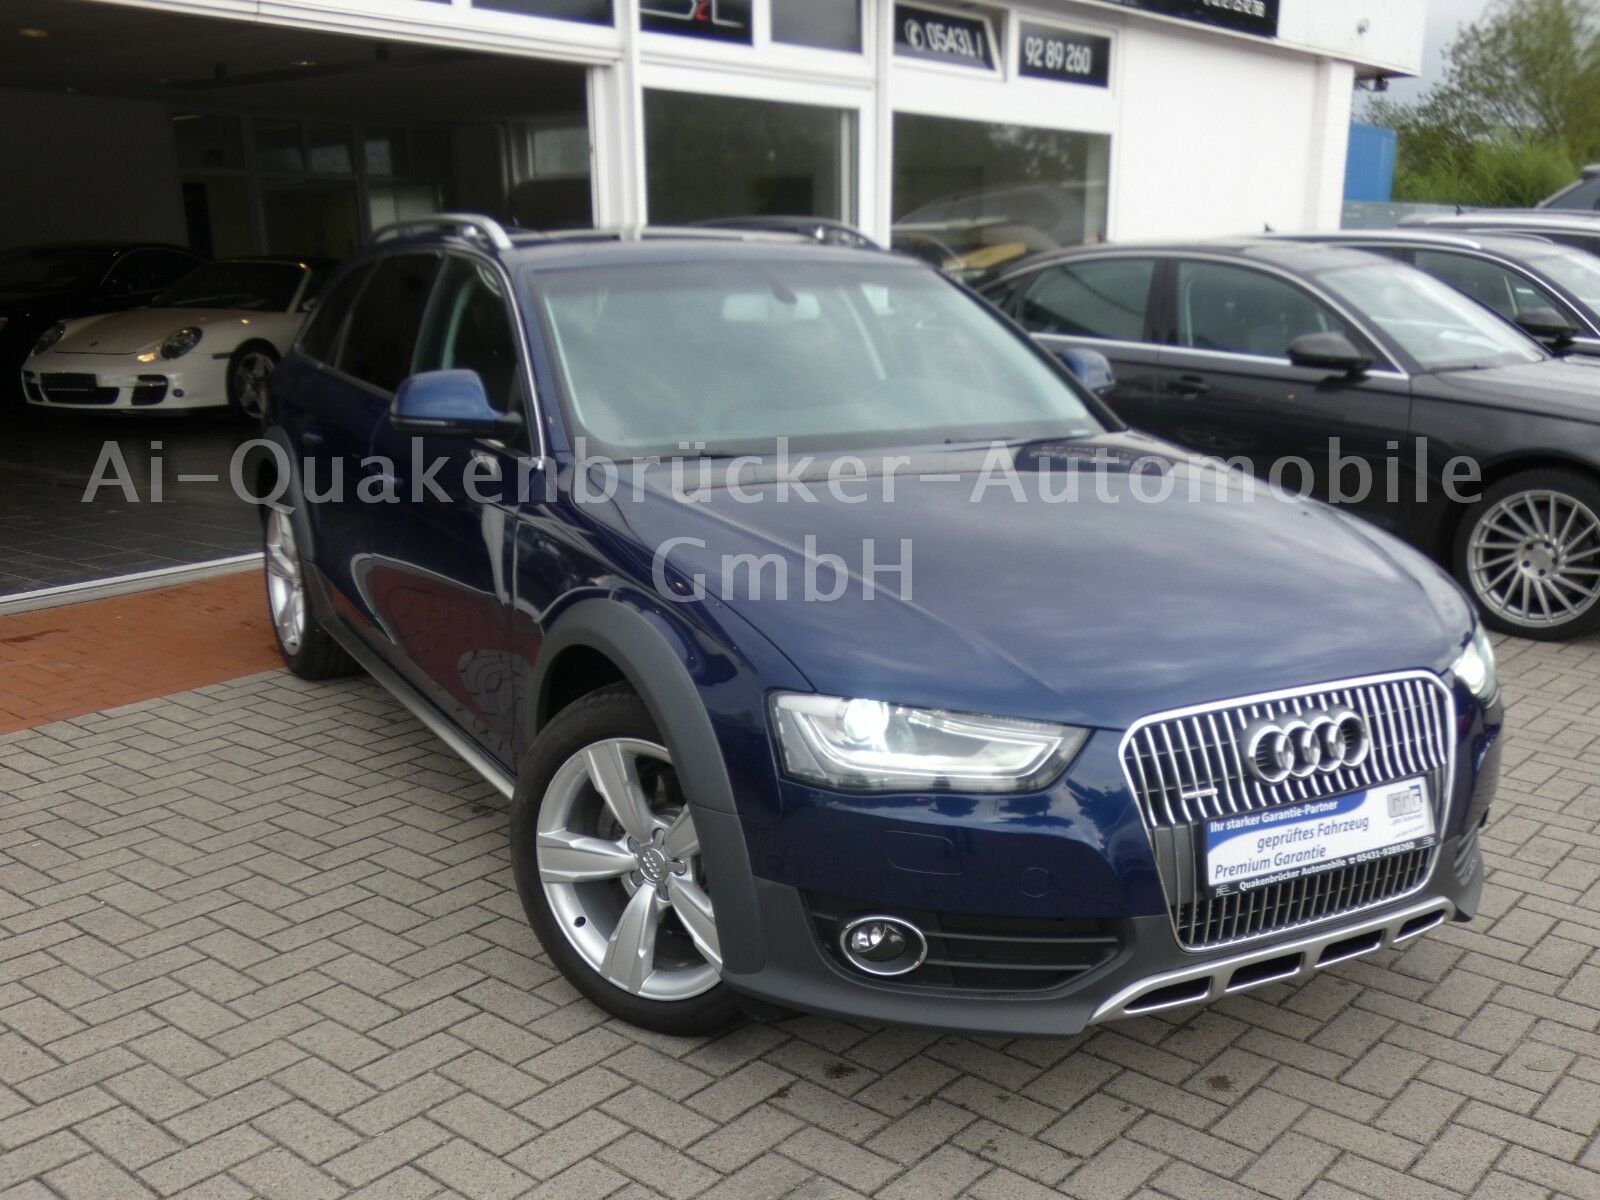 audi a4 allroad gebraucht oder als jahreswagen kaufen in. Black Bedroom Furniture Sets. Home Design Ideas